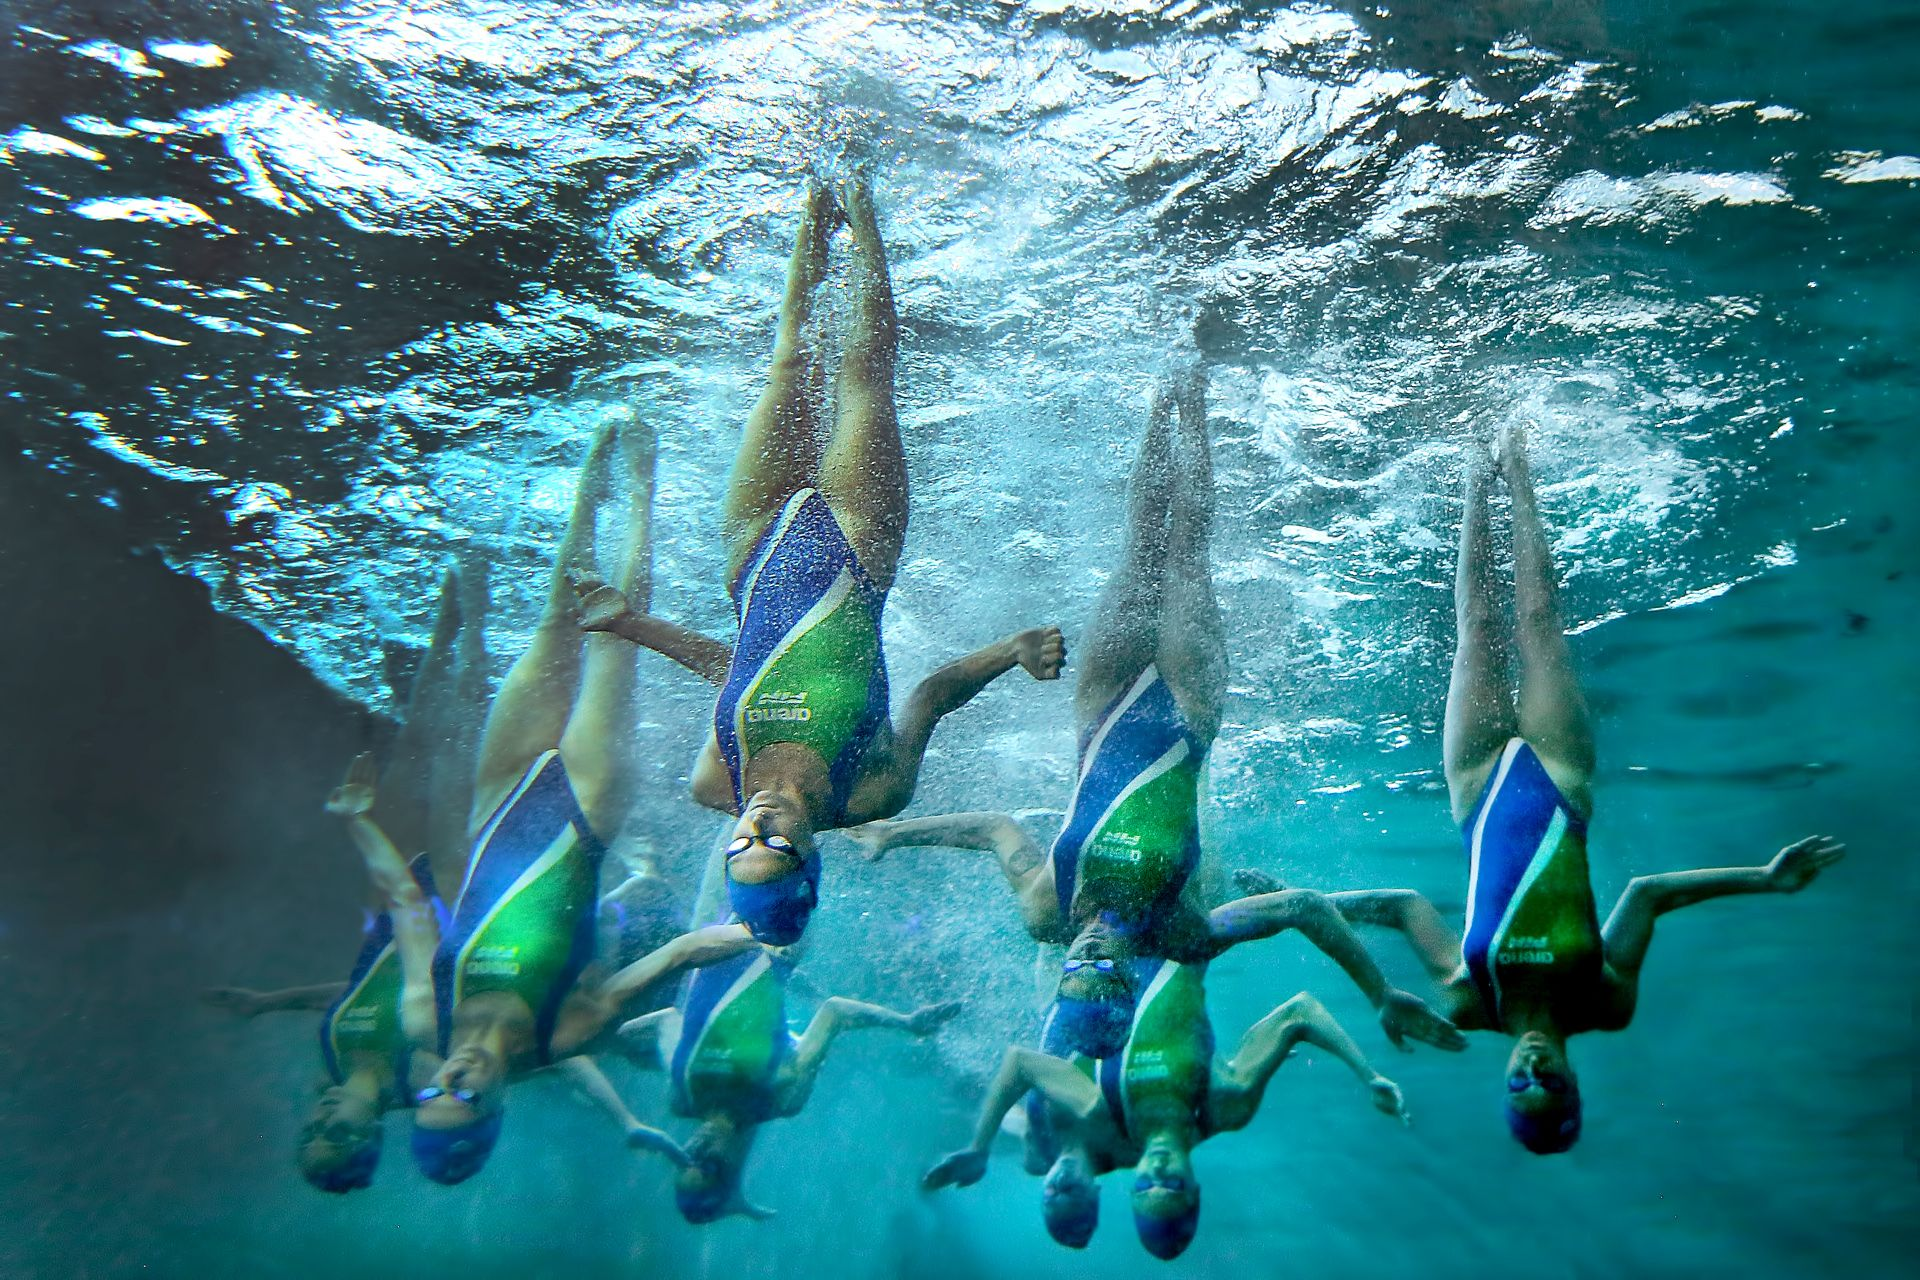 Synchronized swimming, the hidden side 1